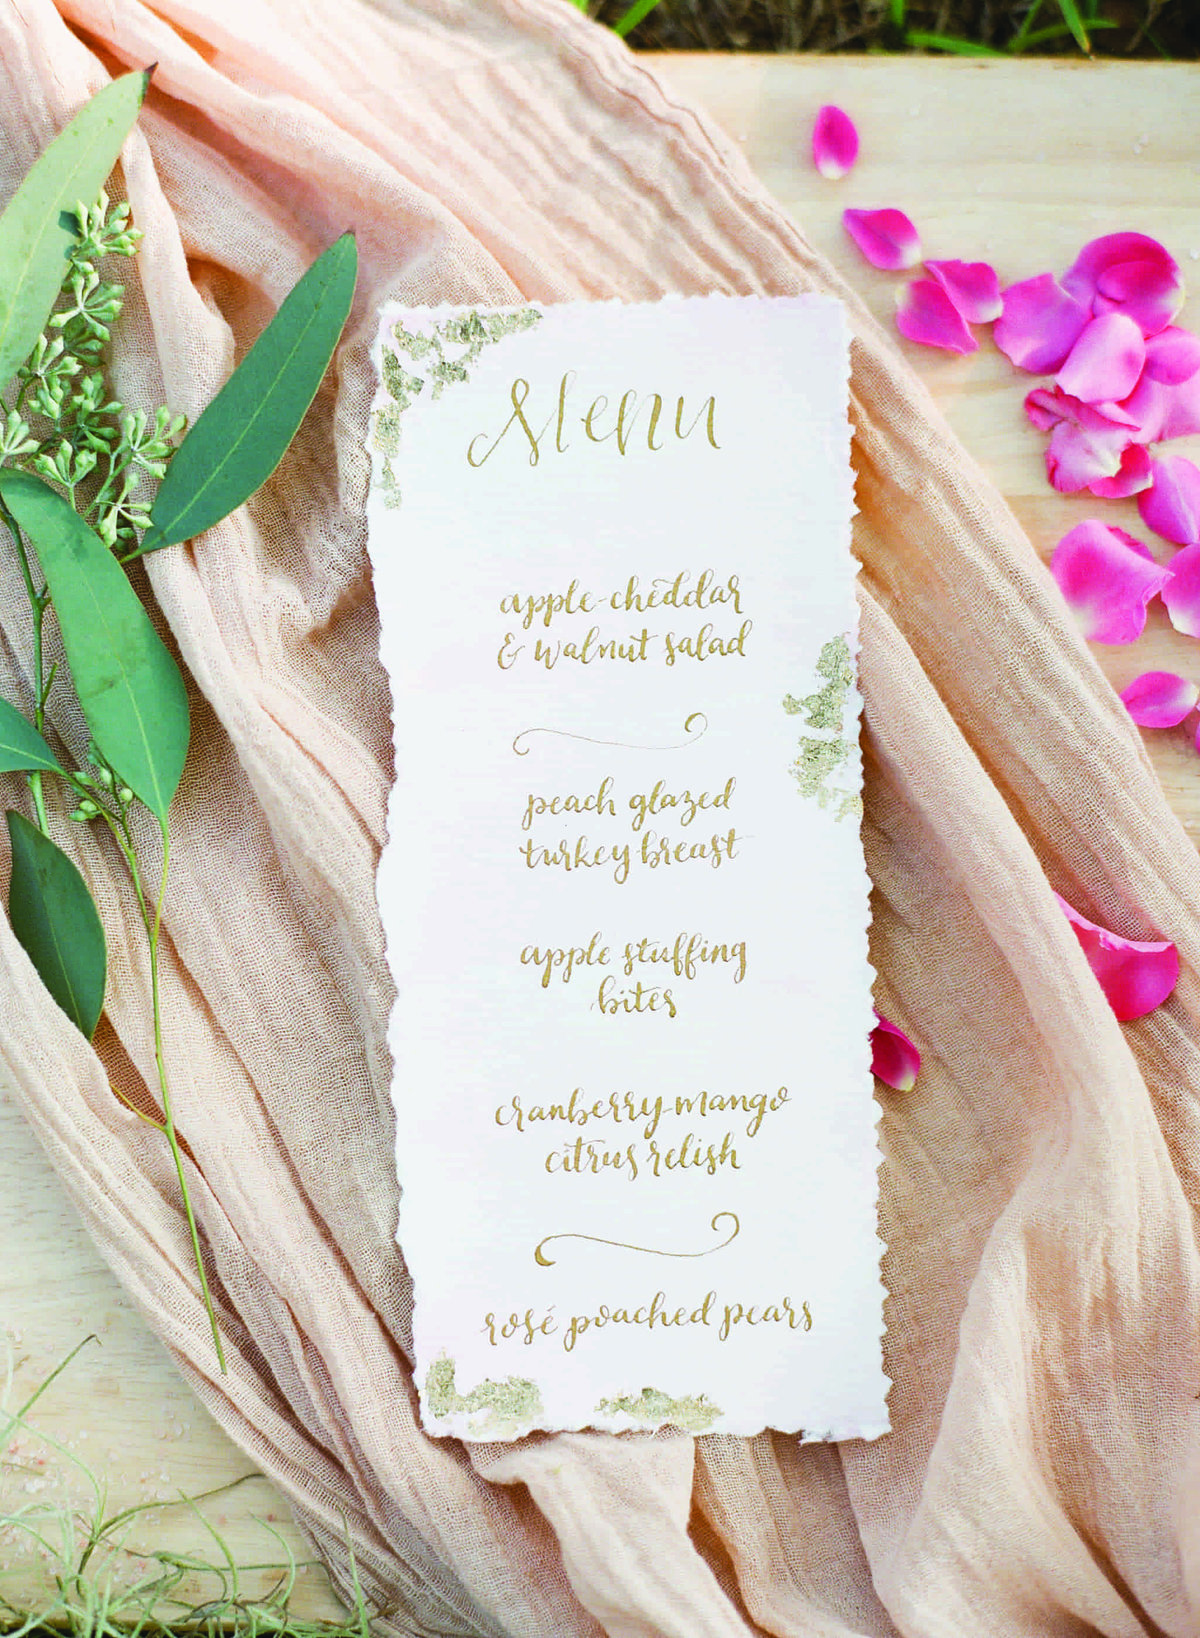 wedding menu calligraphy gold